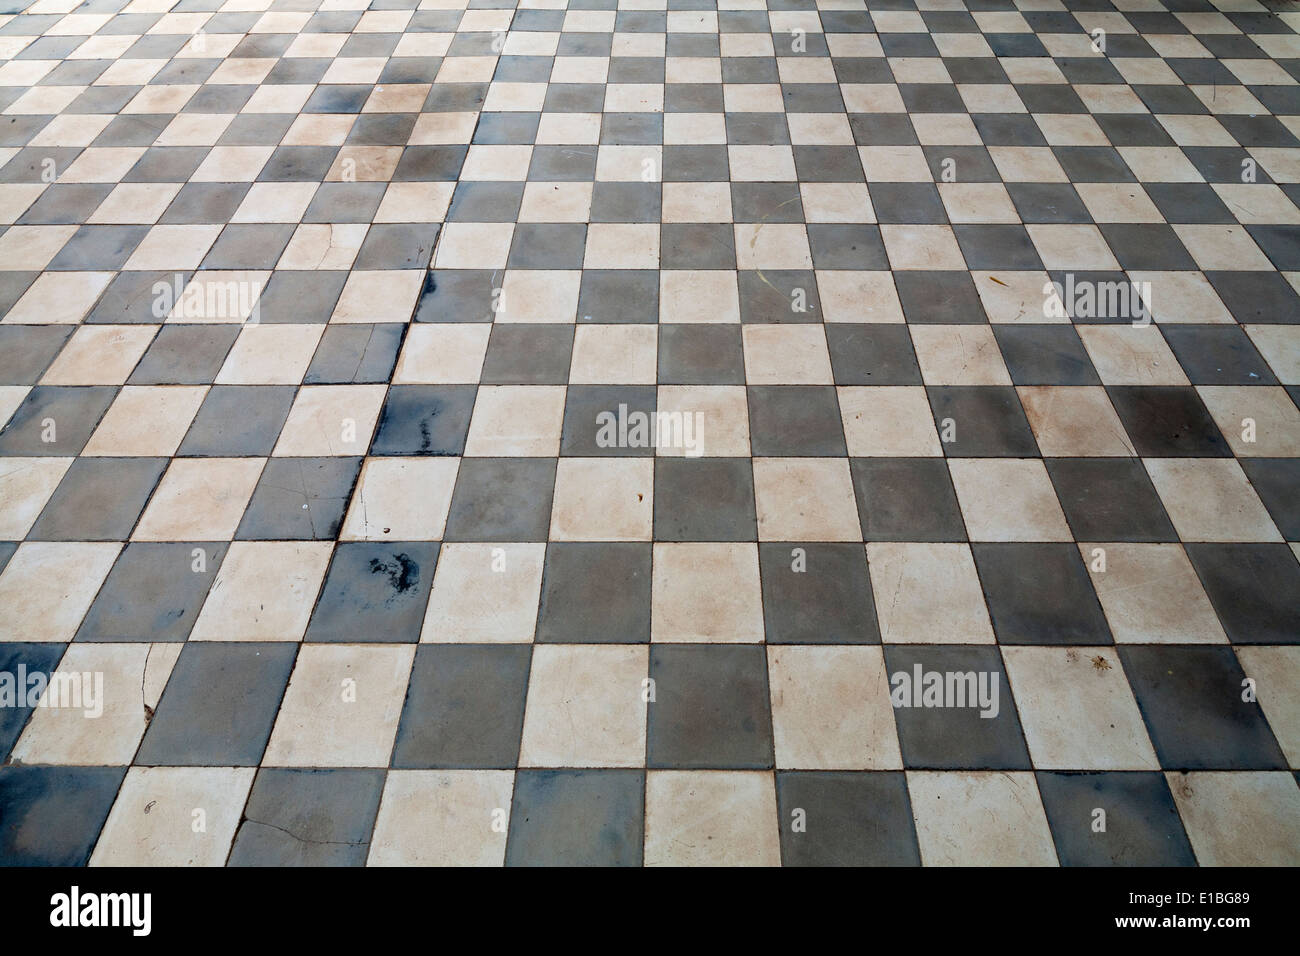 Close up of antique ceramic checkerboard tiled flooring with light shining across - Stock Image